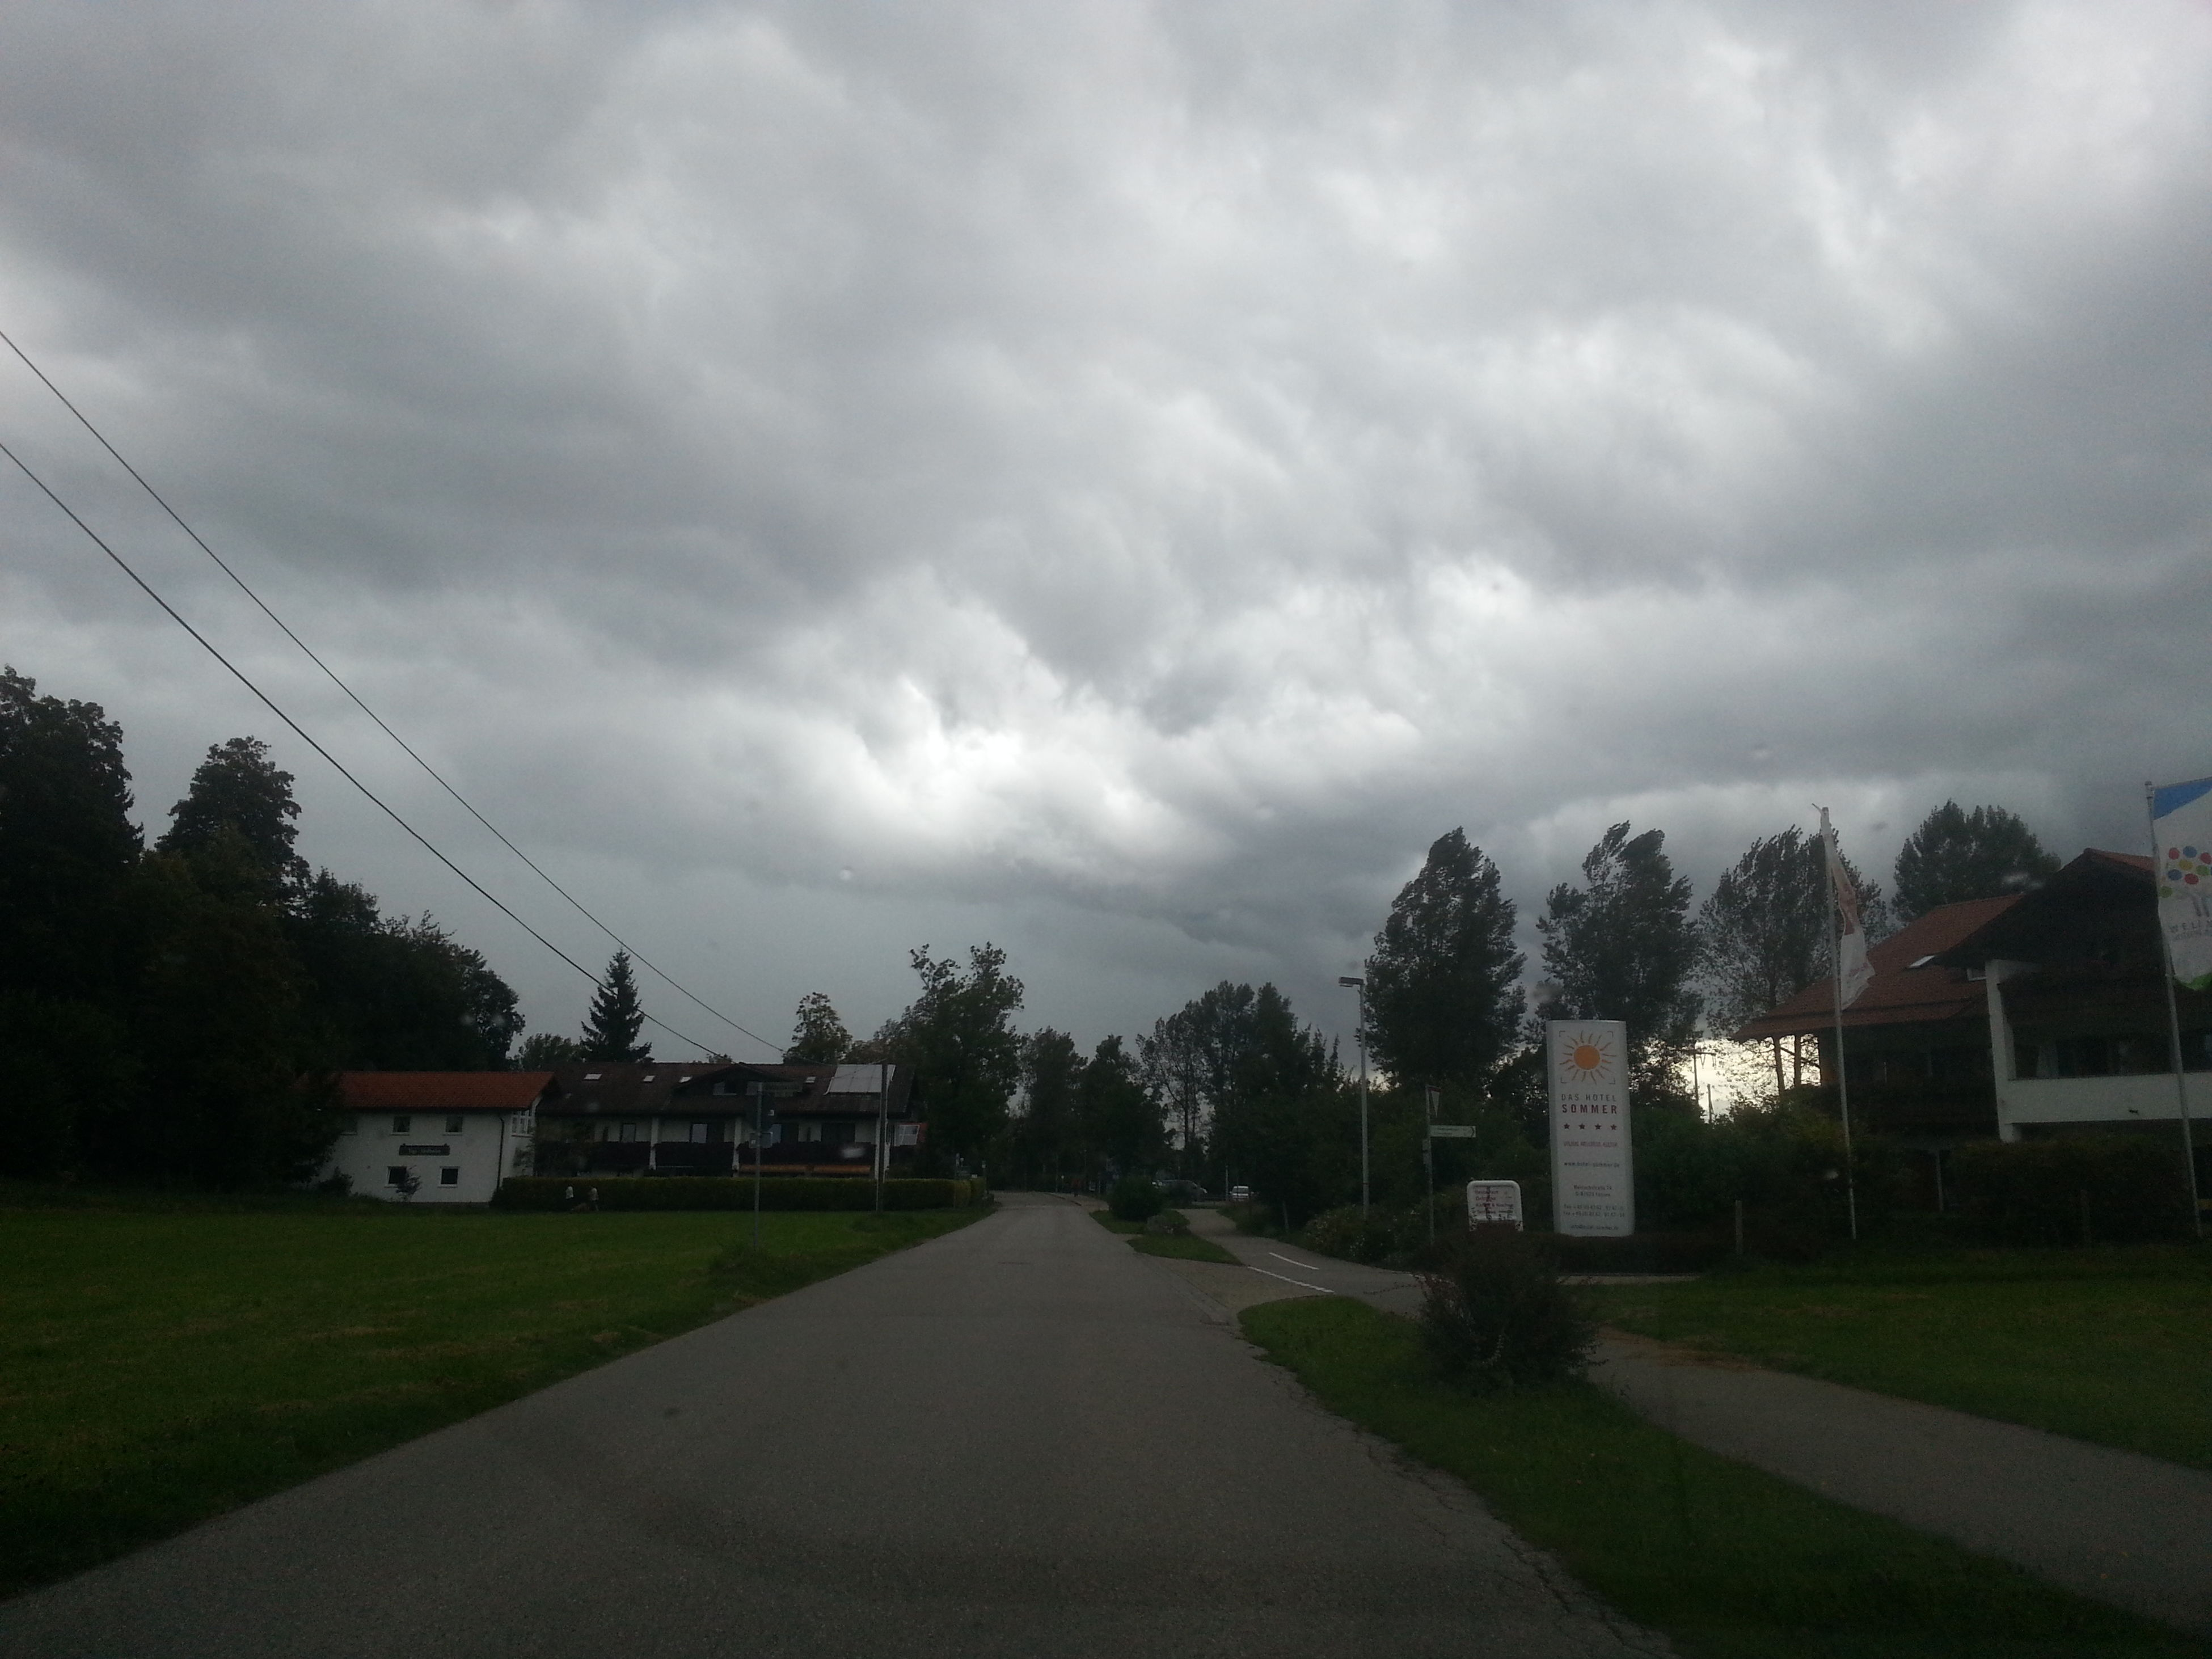 sky, cloud - sky, cloudy, building exterior, the way forward, tree, built structure, architecture, road, grass, cloud, house, overcast, weather, field, nature, storm cloud, empty, street, tranquility